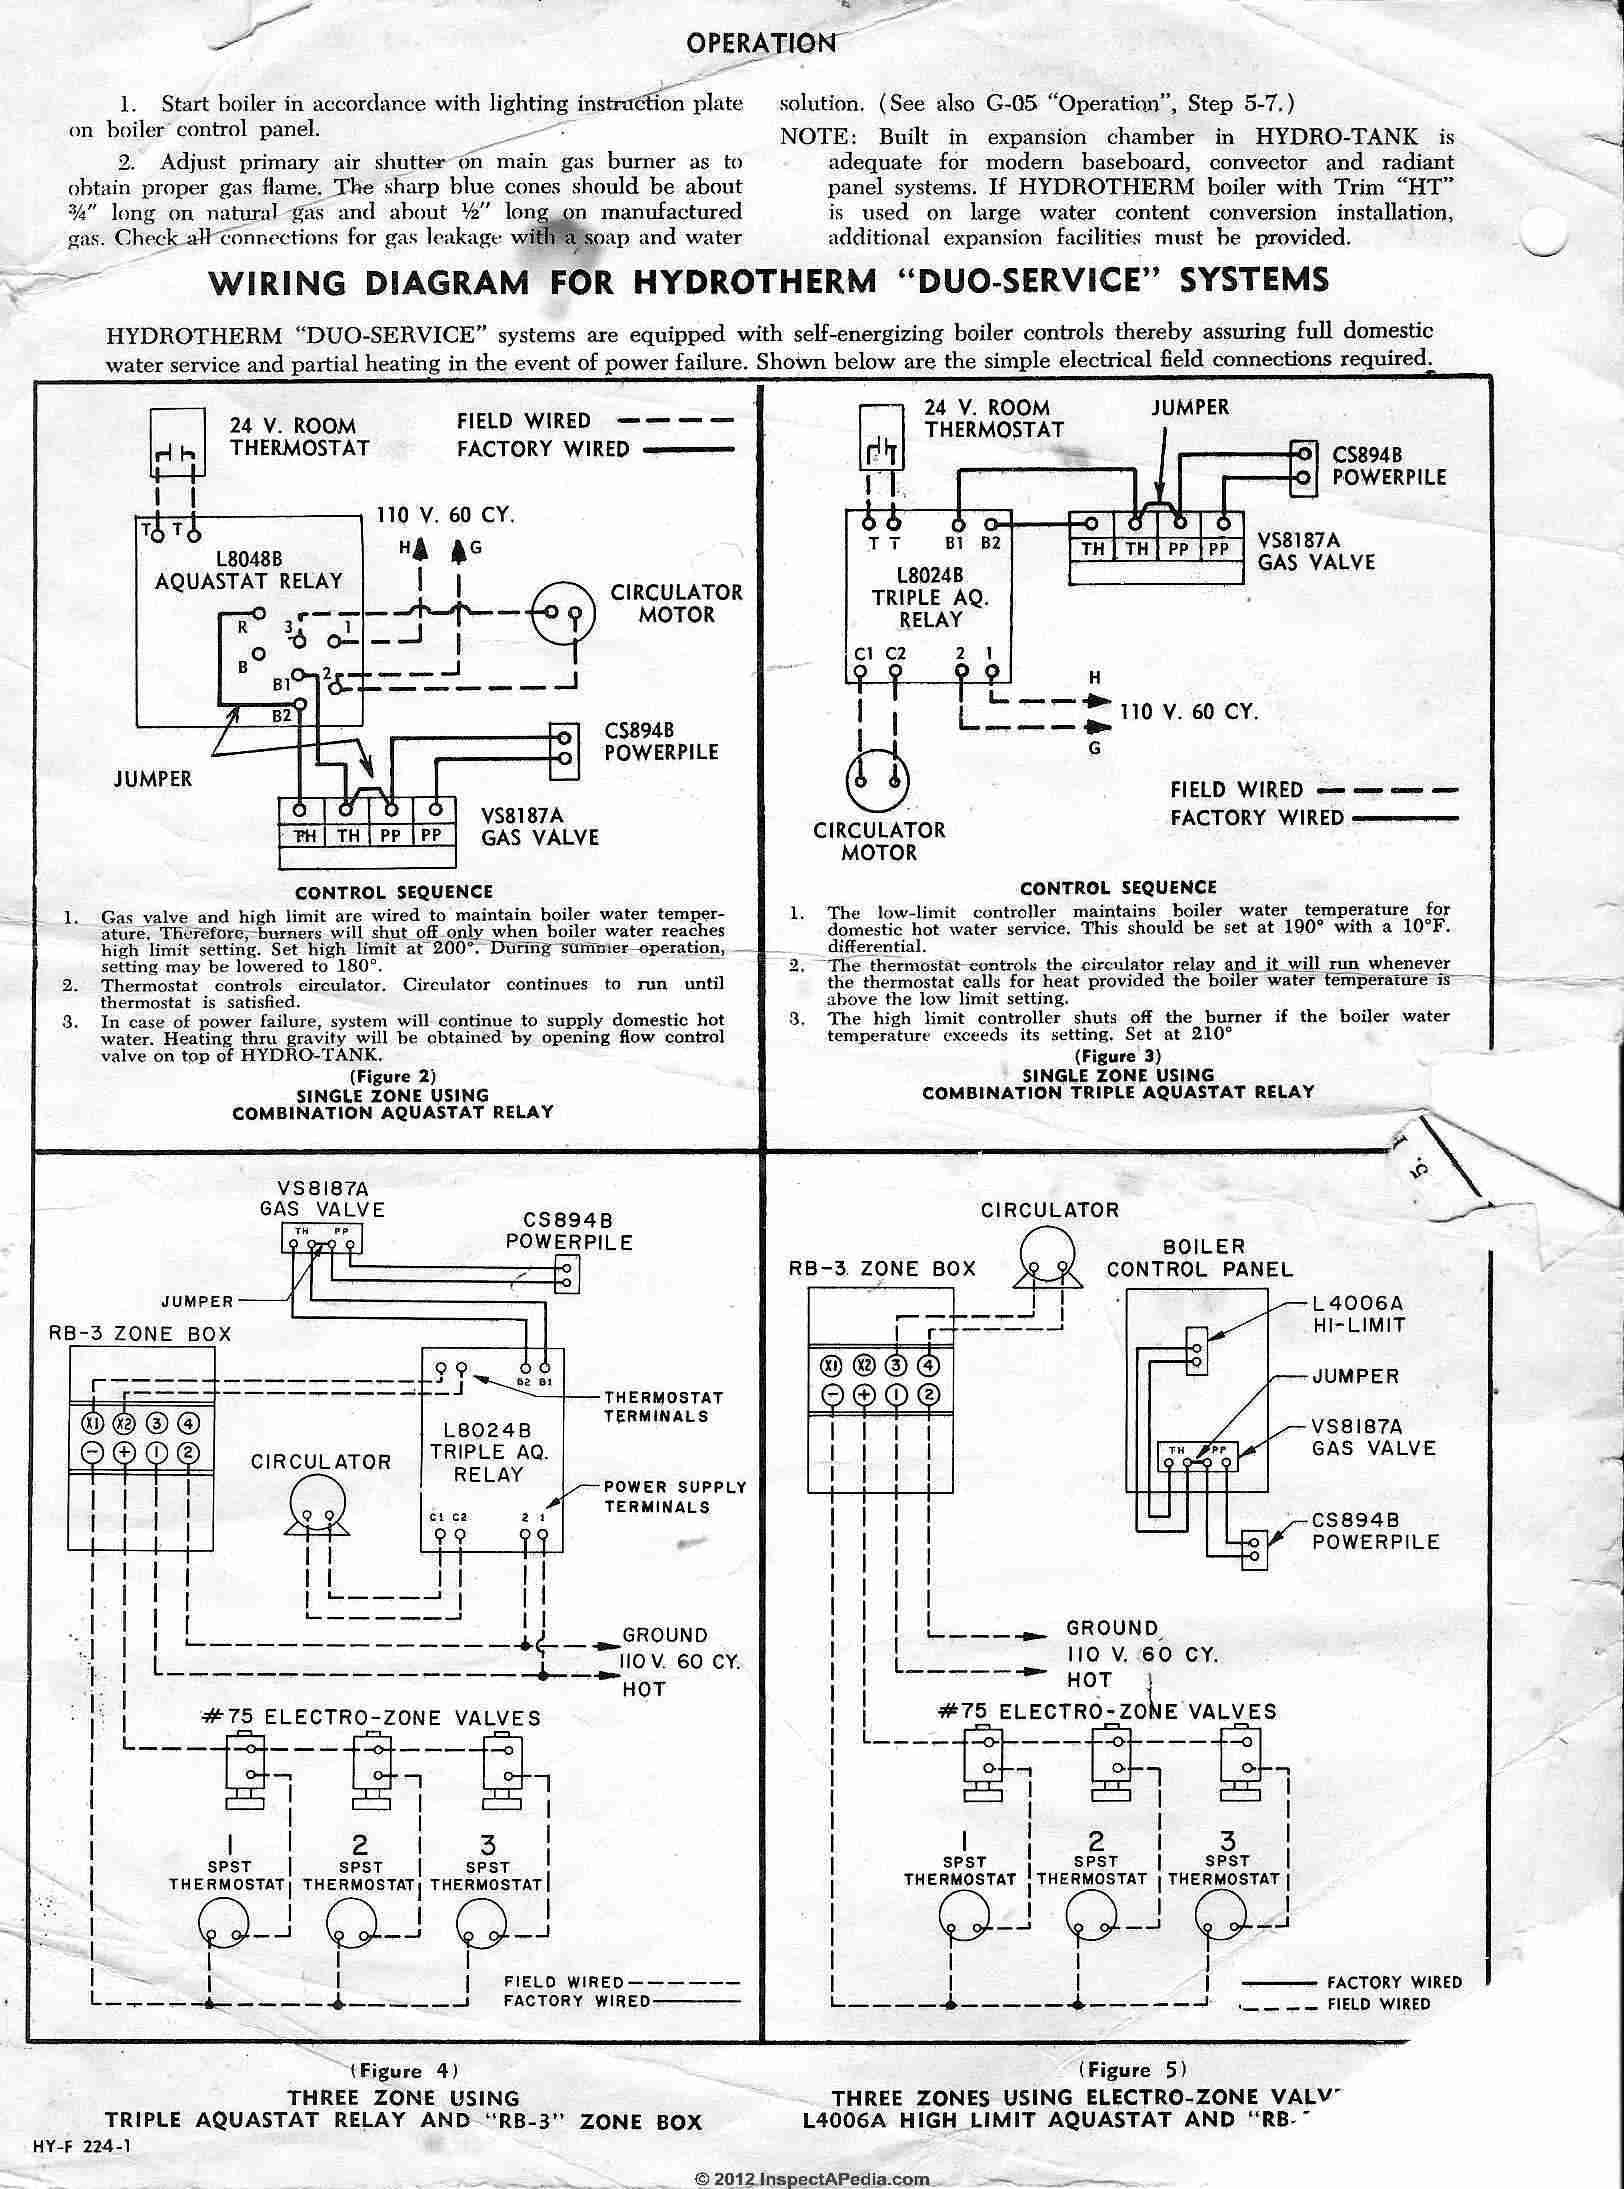 L8024B_Aquastat_0422_DJFcs heating boiler aquastat control diagnosis, troubleshooting, repair honeywell zone control wiring diagram at panicattacktreatment.co